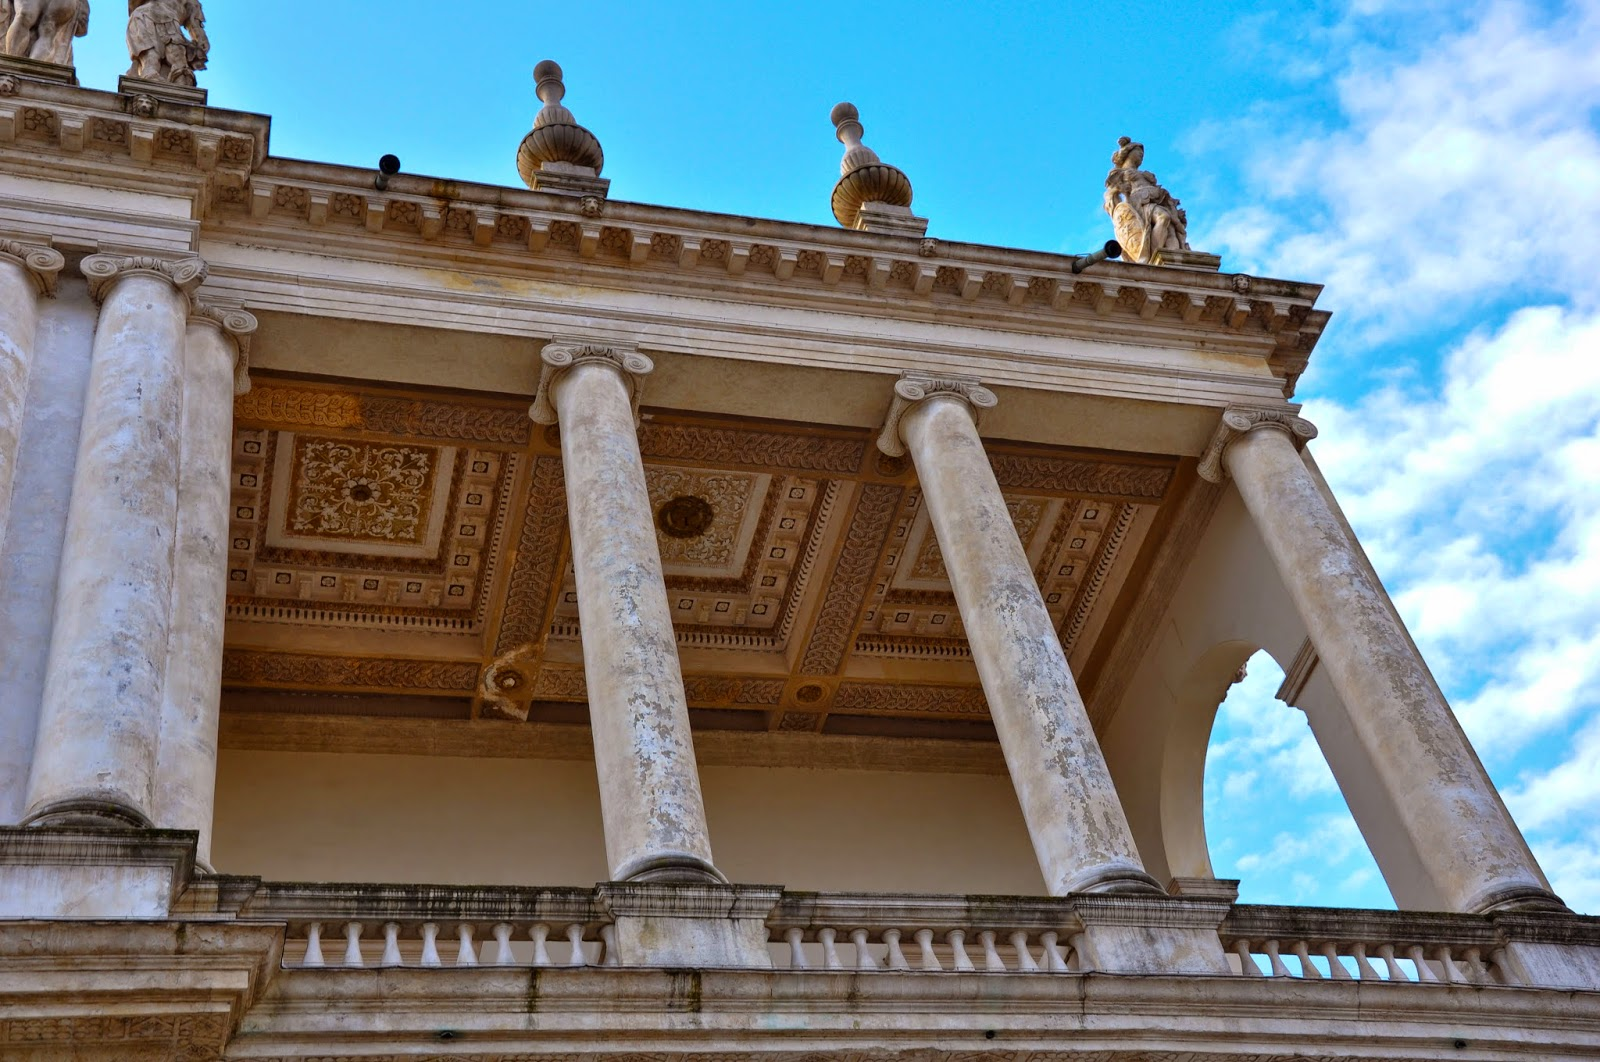 The upper balcony of Palazzo Chiericati in Vicenza, Italy against the blue skies of Veneto